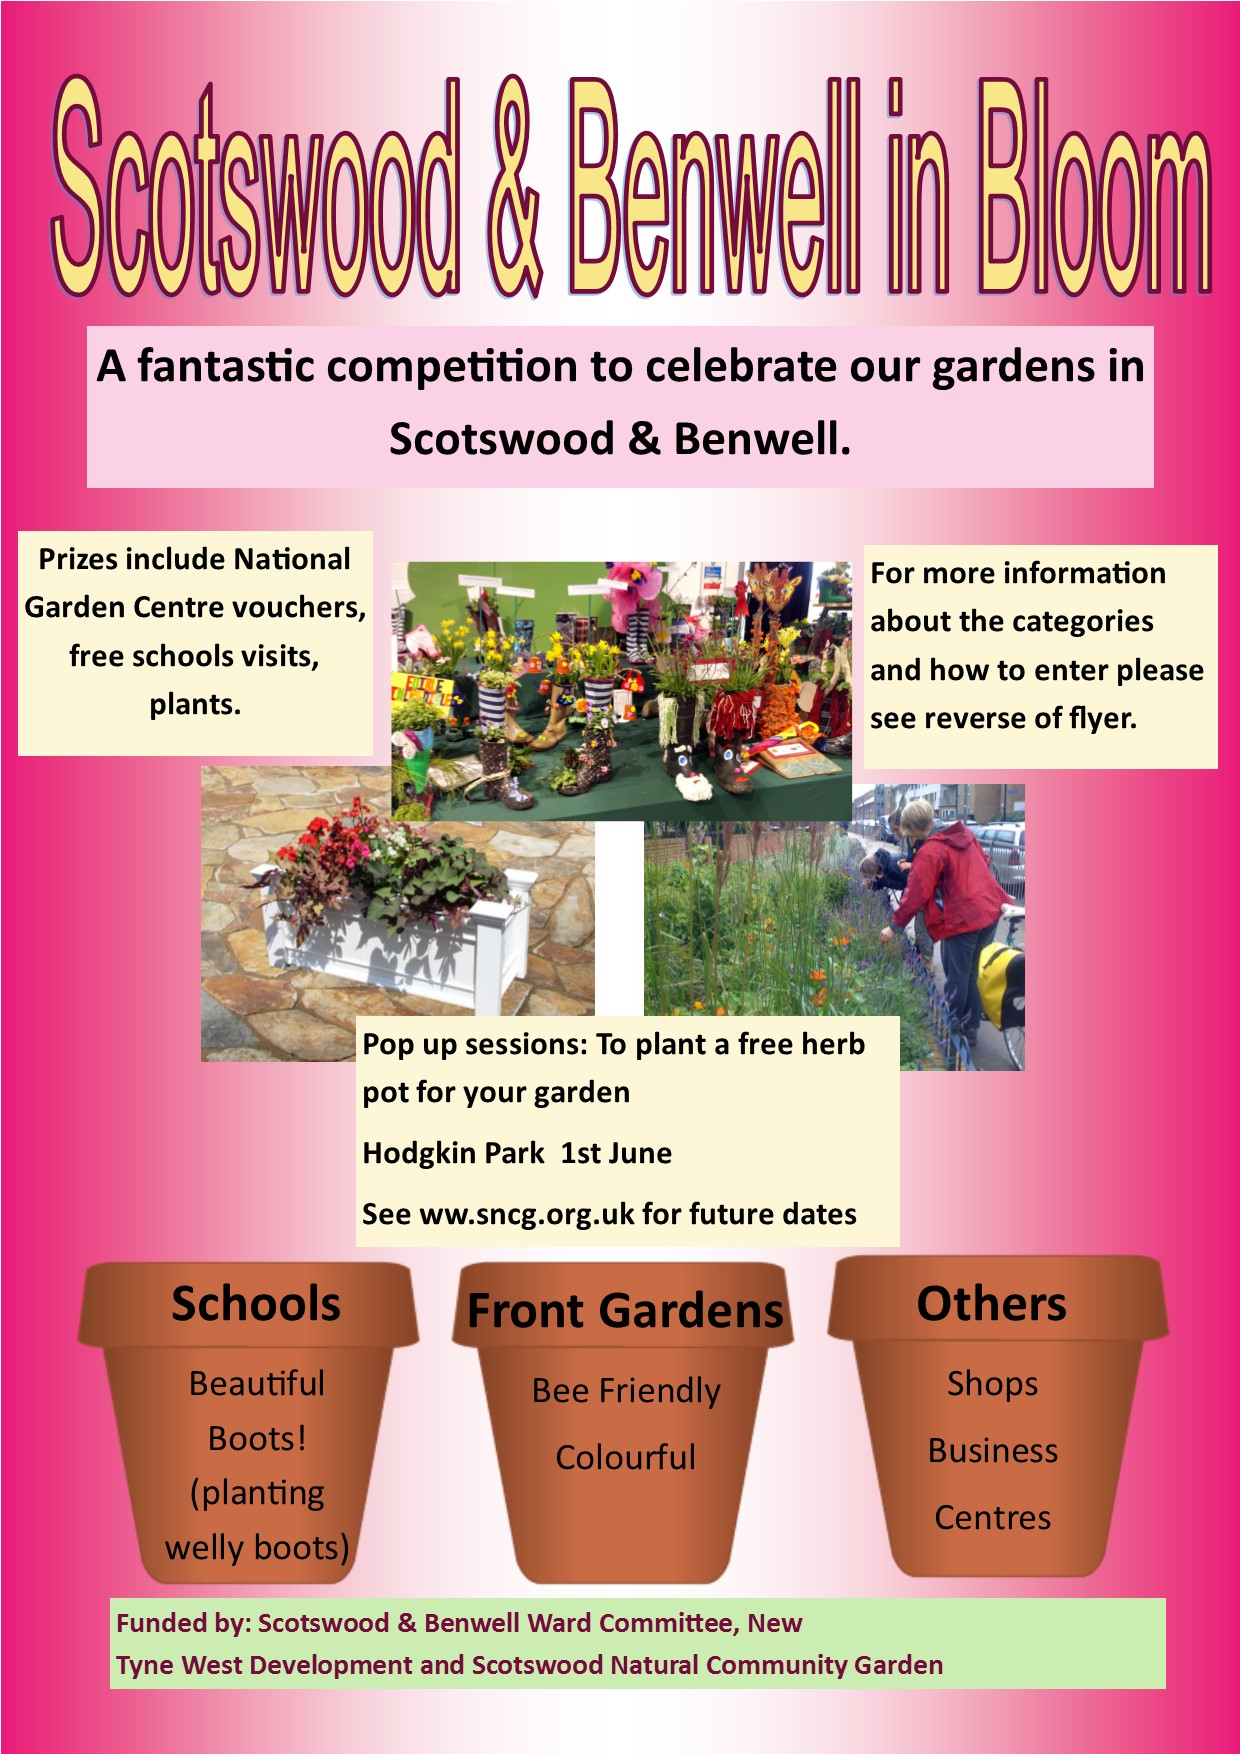 flyer for scotswood benwell bloom